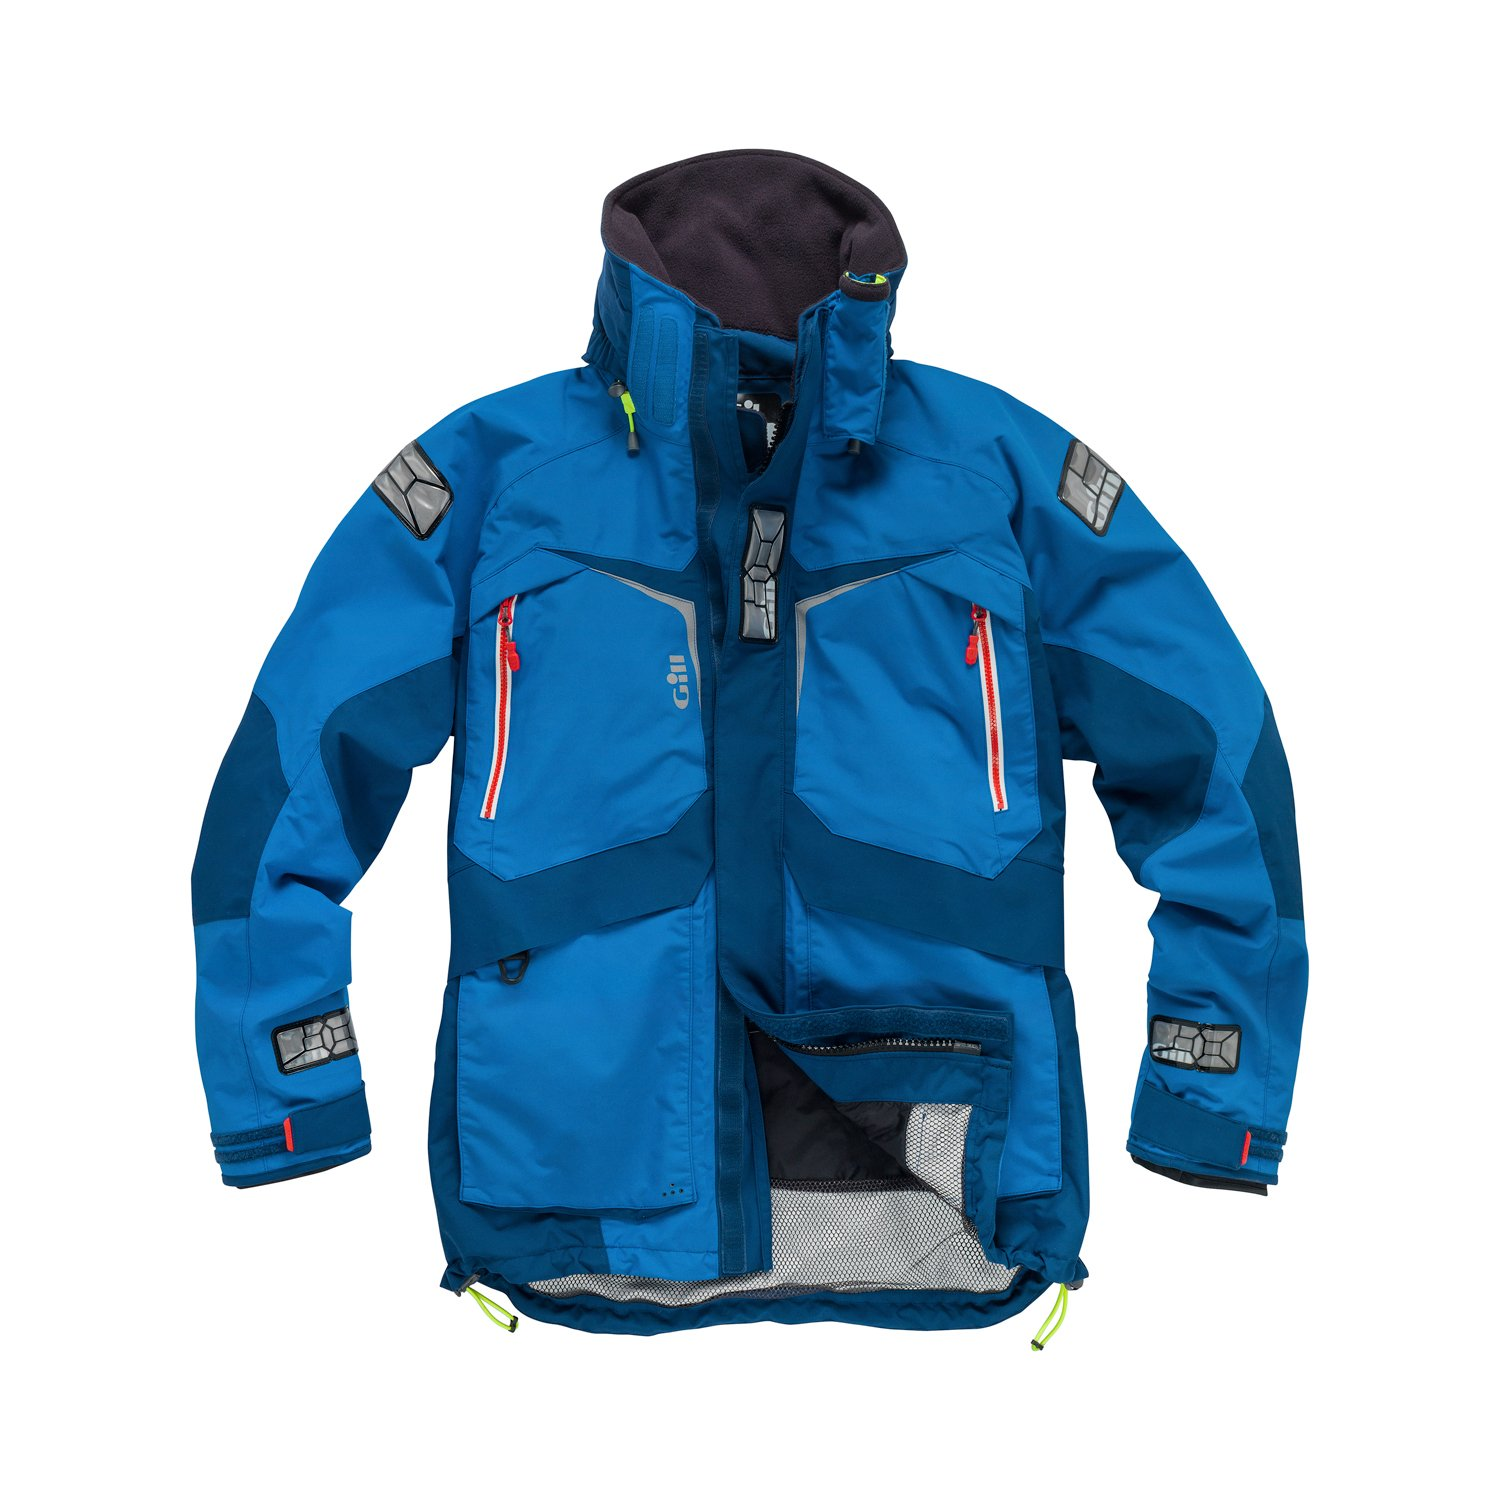 2017 Gill OS2 Jacket Blue OS23J Sizes- - ExtraLarge by Gill